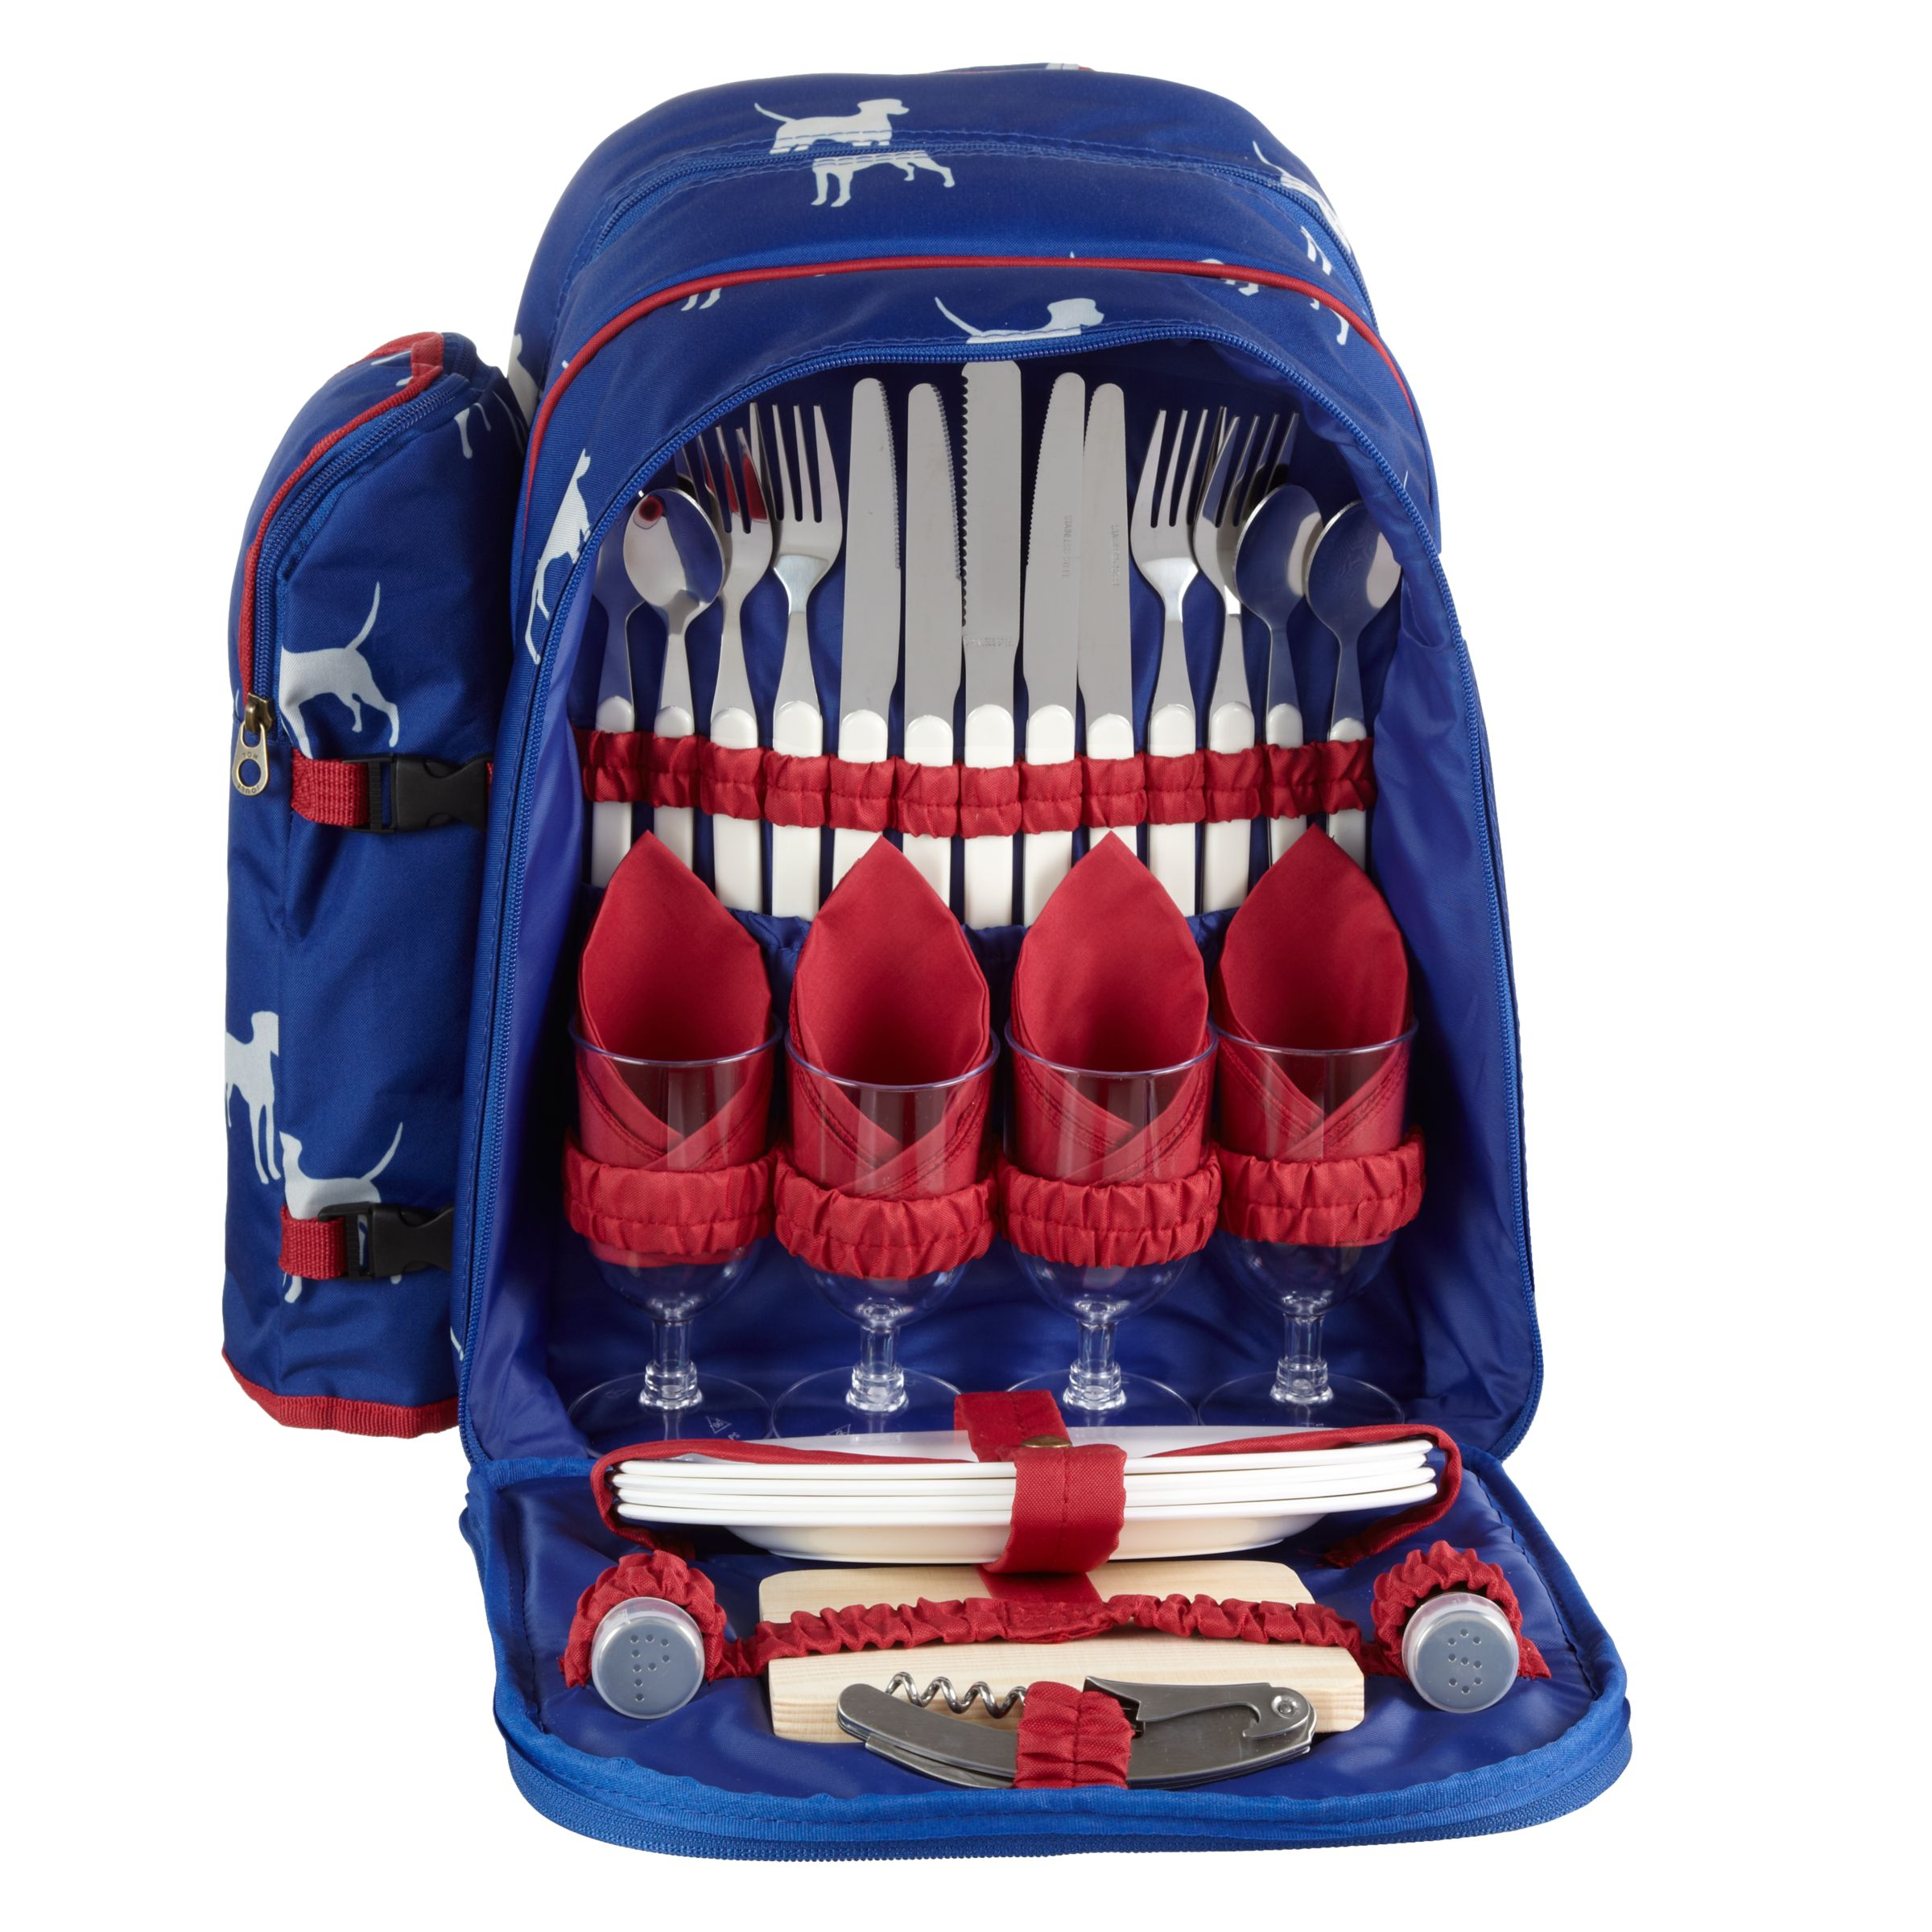 Joules Dog Filled Picnic Backpack, Multi